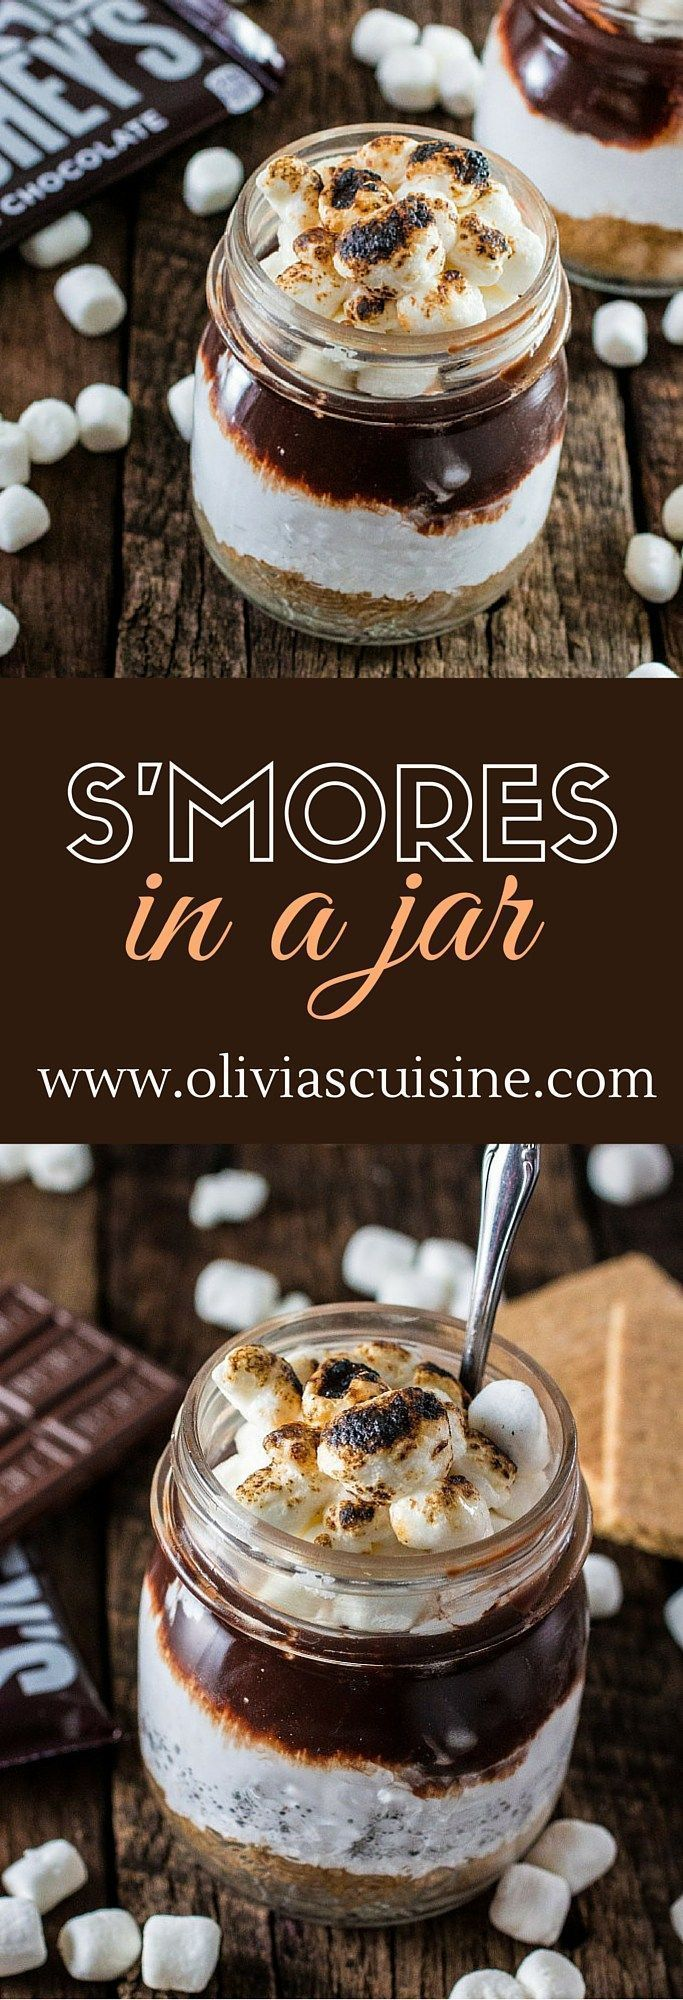 S'mores in a Jar   www.oliviascuisin...   No campfire? No problem! This recipe for S'mores in a Jar is made at the comfort of your home and can be enjoyed indoors! #LetsMakeSmores #Ad